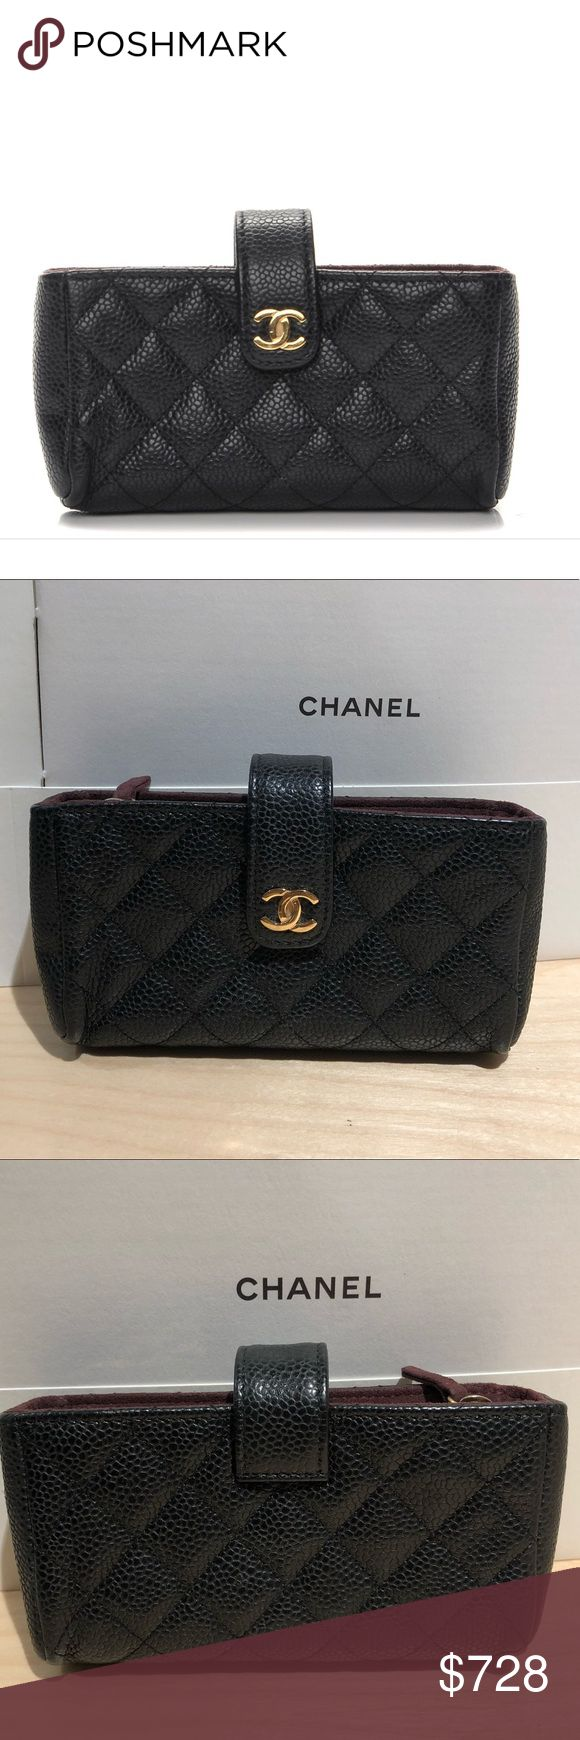 Authentic Chanel Caviar Quilted Mini Phone Holder This is an authentic in excellent condition CHANEL Caviar Quilted Mini Phone Holder Clutch in Black color. This is crafted of diamond quilted caviar leather in black. It features a cross over strap with a gold Chanel CC and a padded interior with a central dividing zipper pocket. This is an excellent phone holder for safety and security with the timeless quality and style of Chanel!  Measurements  Length: 5.25 in Width: 1.25 in Height: 3 in…